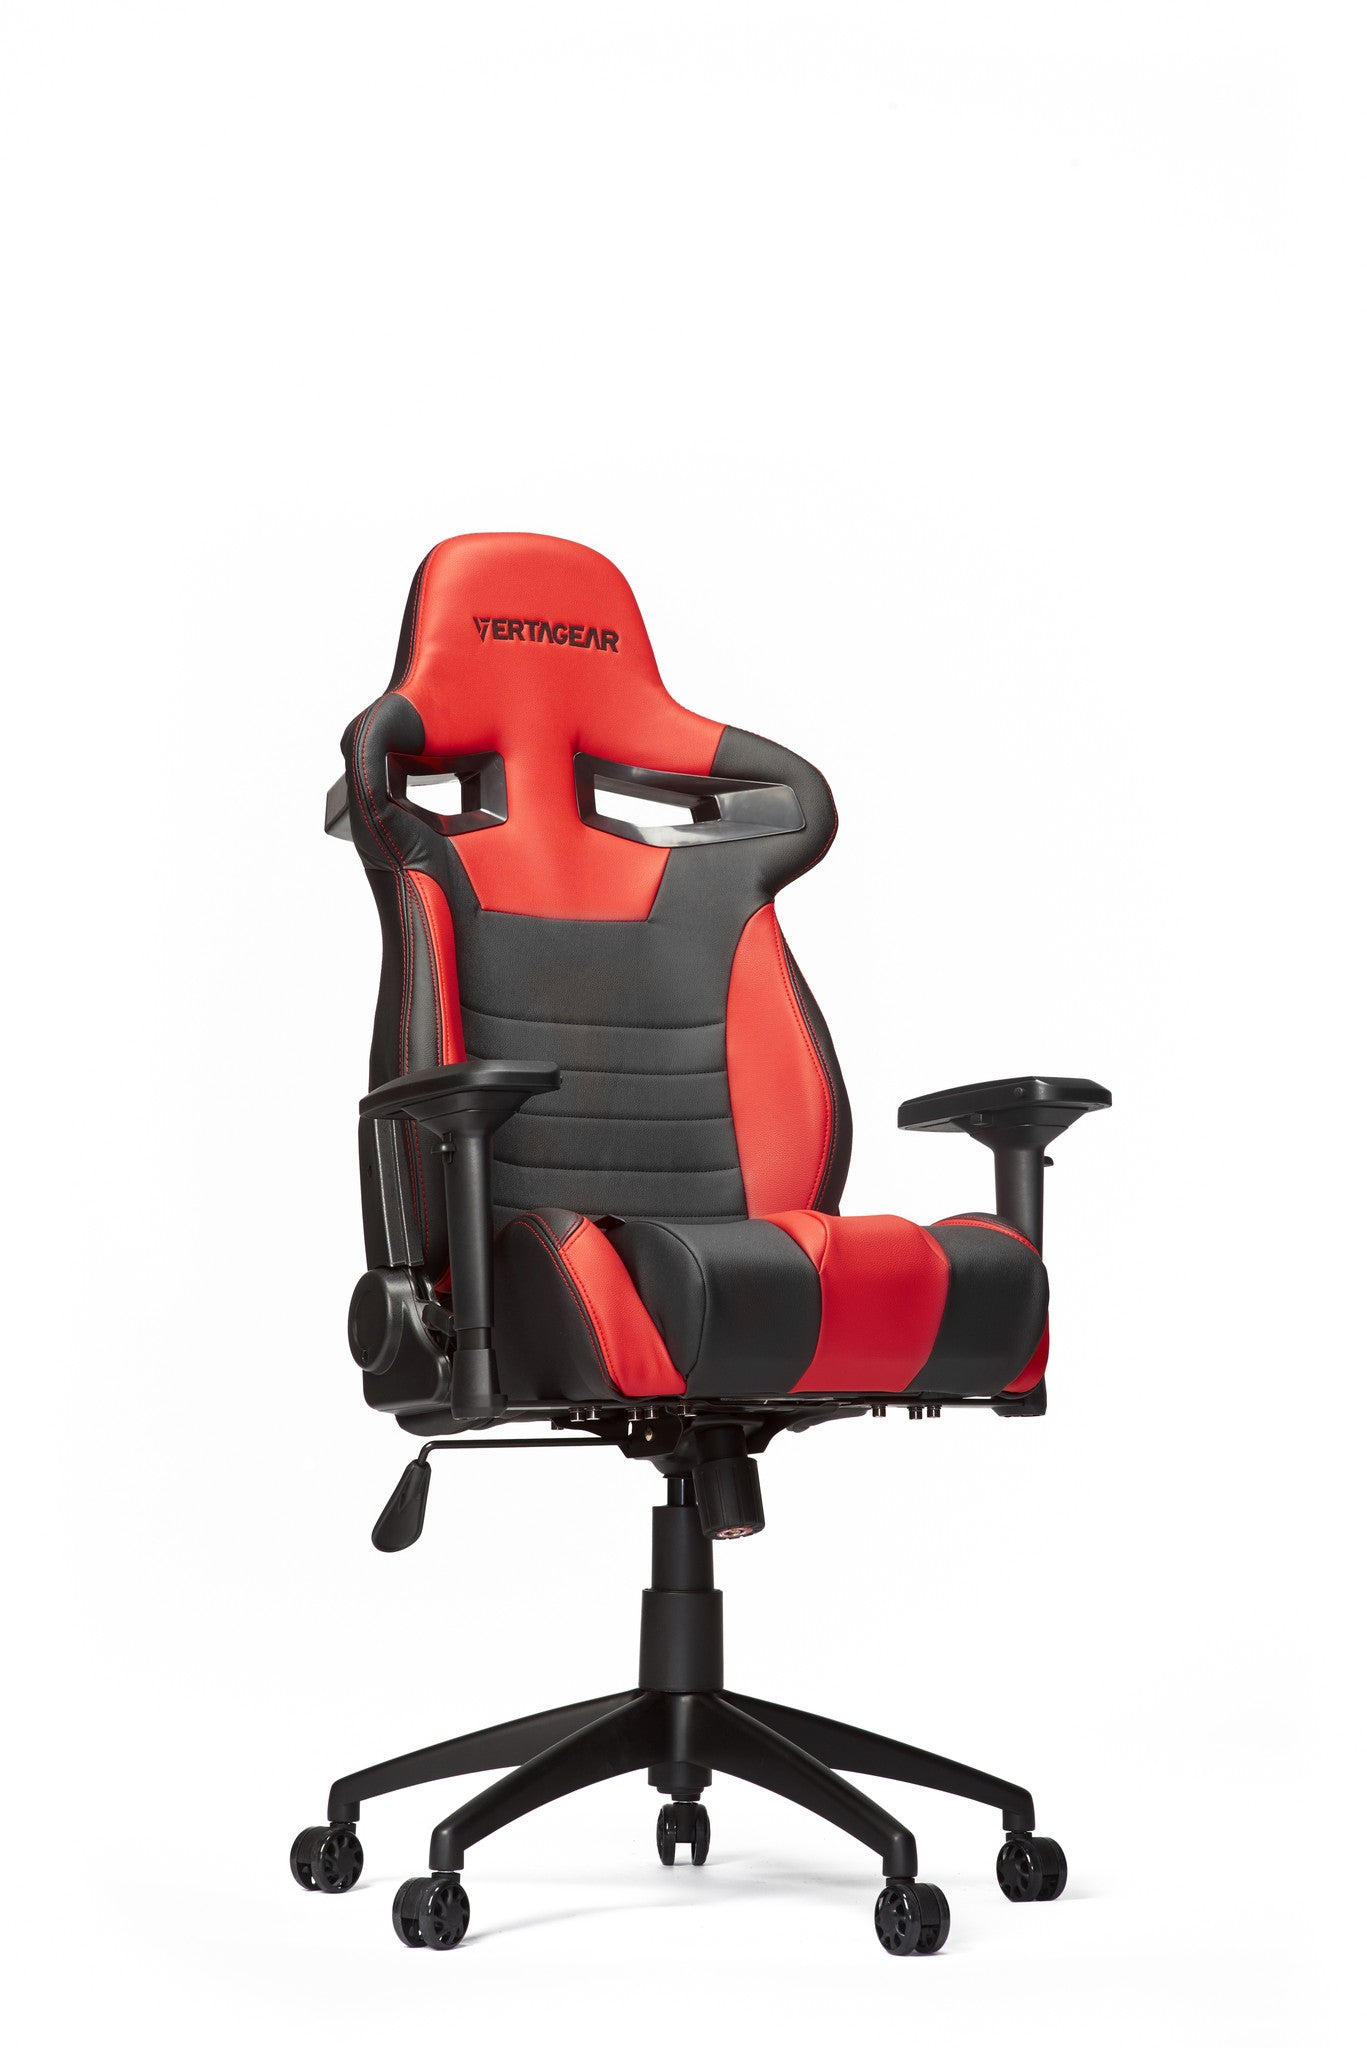 Brilliant Vertagear Racing Series S Line Sl4000 Gaming Chair Black Red Andrewgaddart Wooden Chair Designs For Living Room Andrewgaddartcom